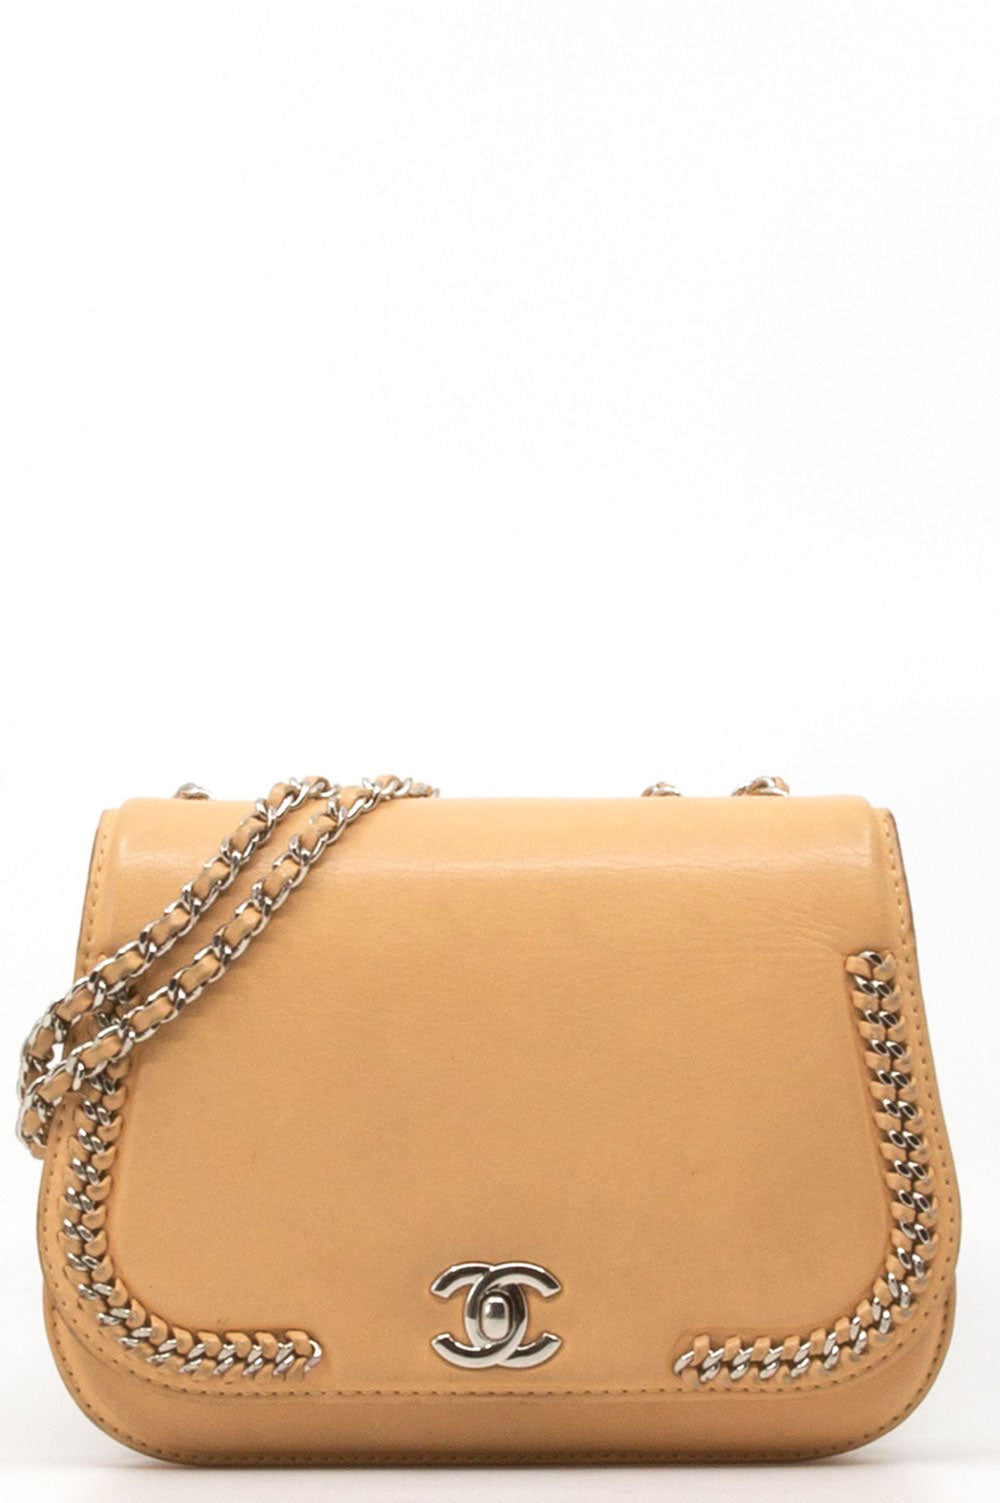 Chanel Flap Chain bag in Beige.